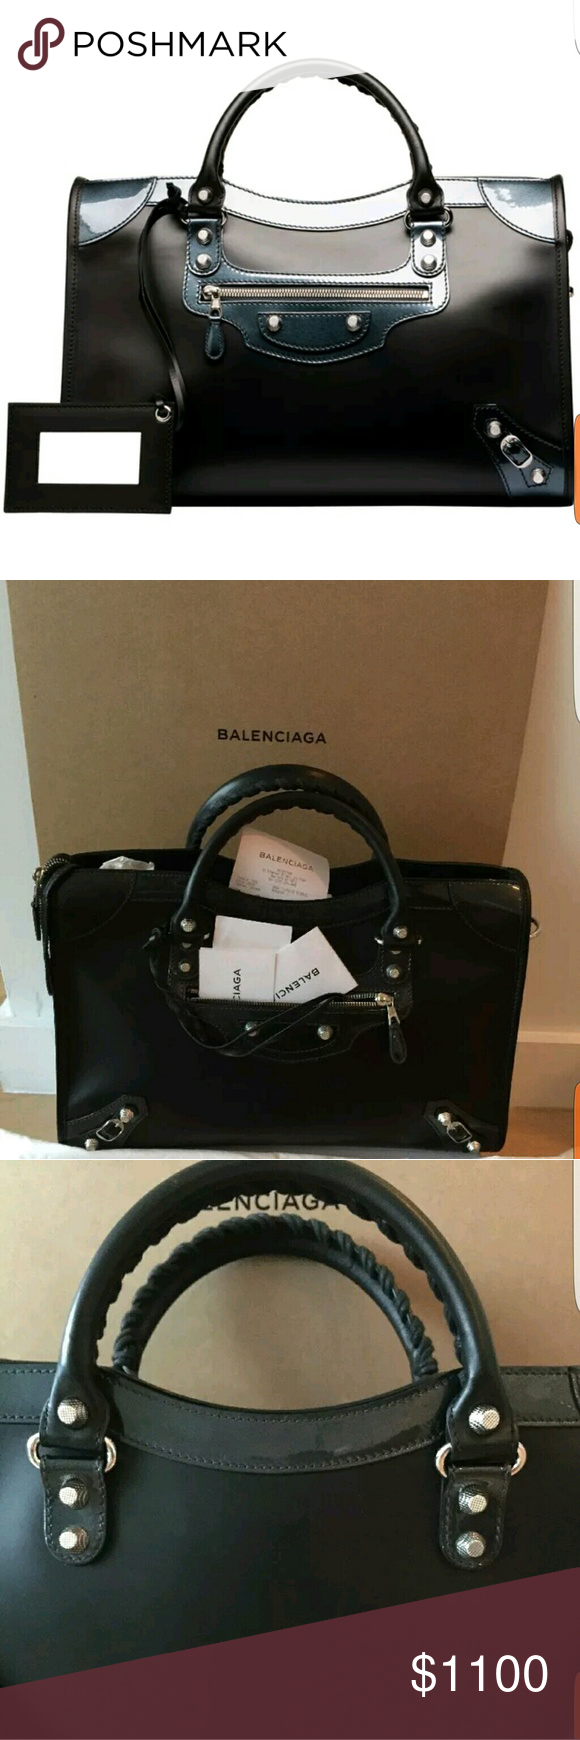 b66c1d998a Balenciaga Holiday City Giant Matte Calfskin Estimated Retail: $2,125  Condition: Great. Extremely Faint